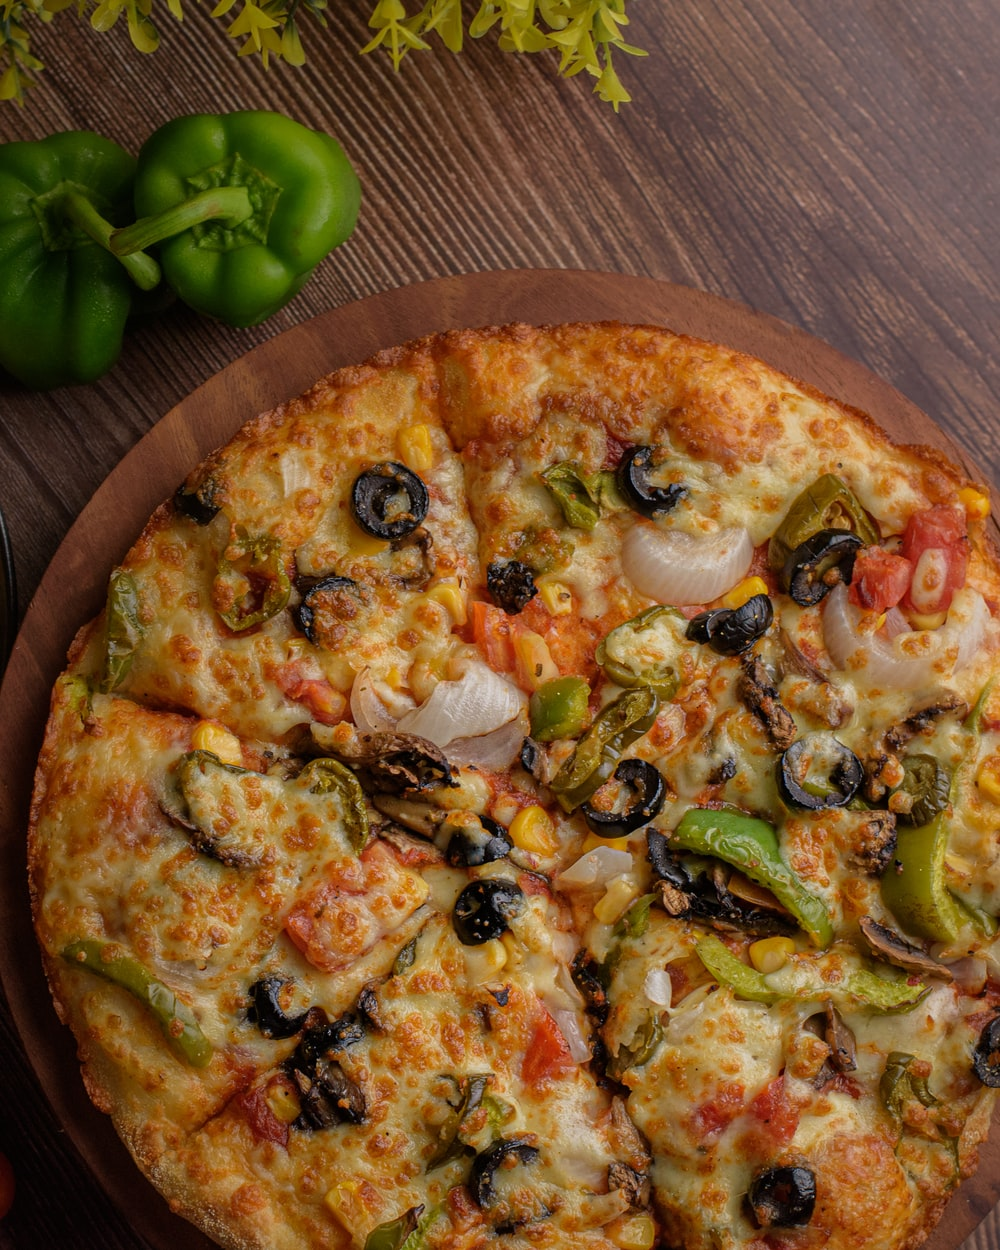 pizza with green bell pepper and green bell pepper